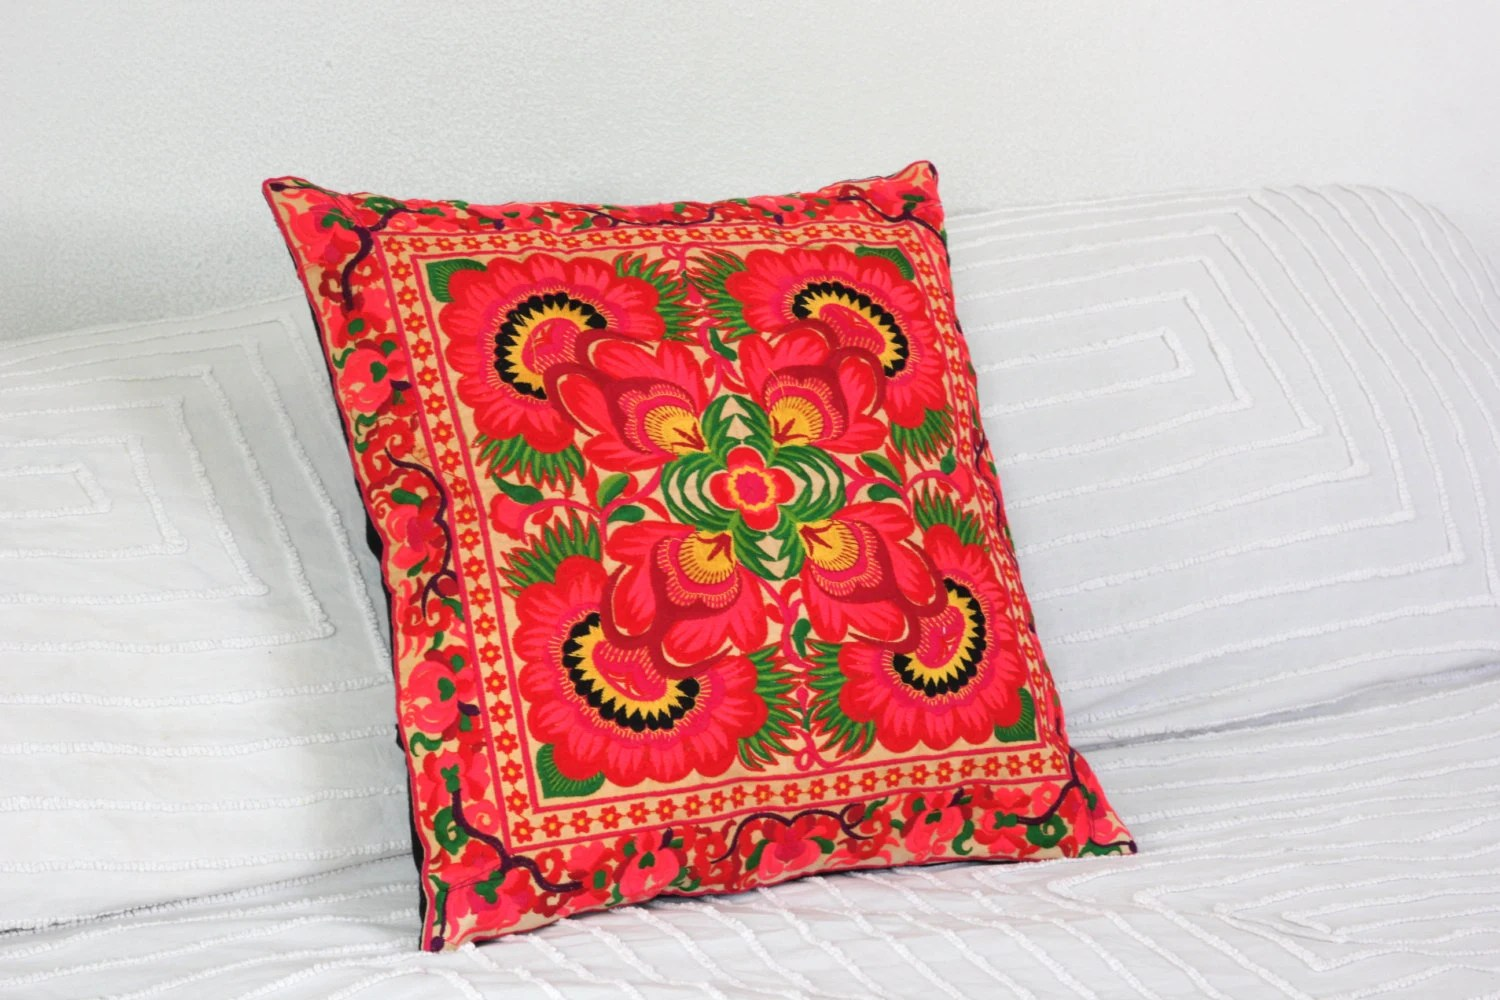 Boho Cushions Australia Hmong Thai Embroidered Hobo Boho Cushion Pillow Cover